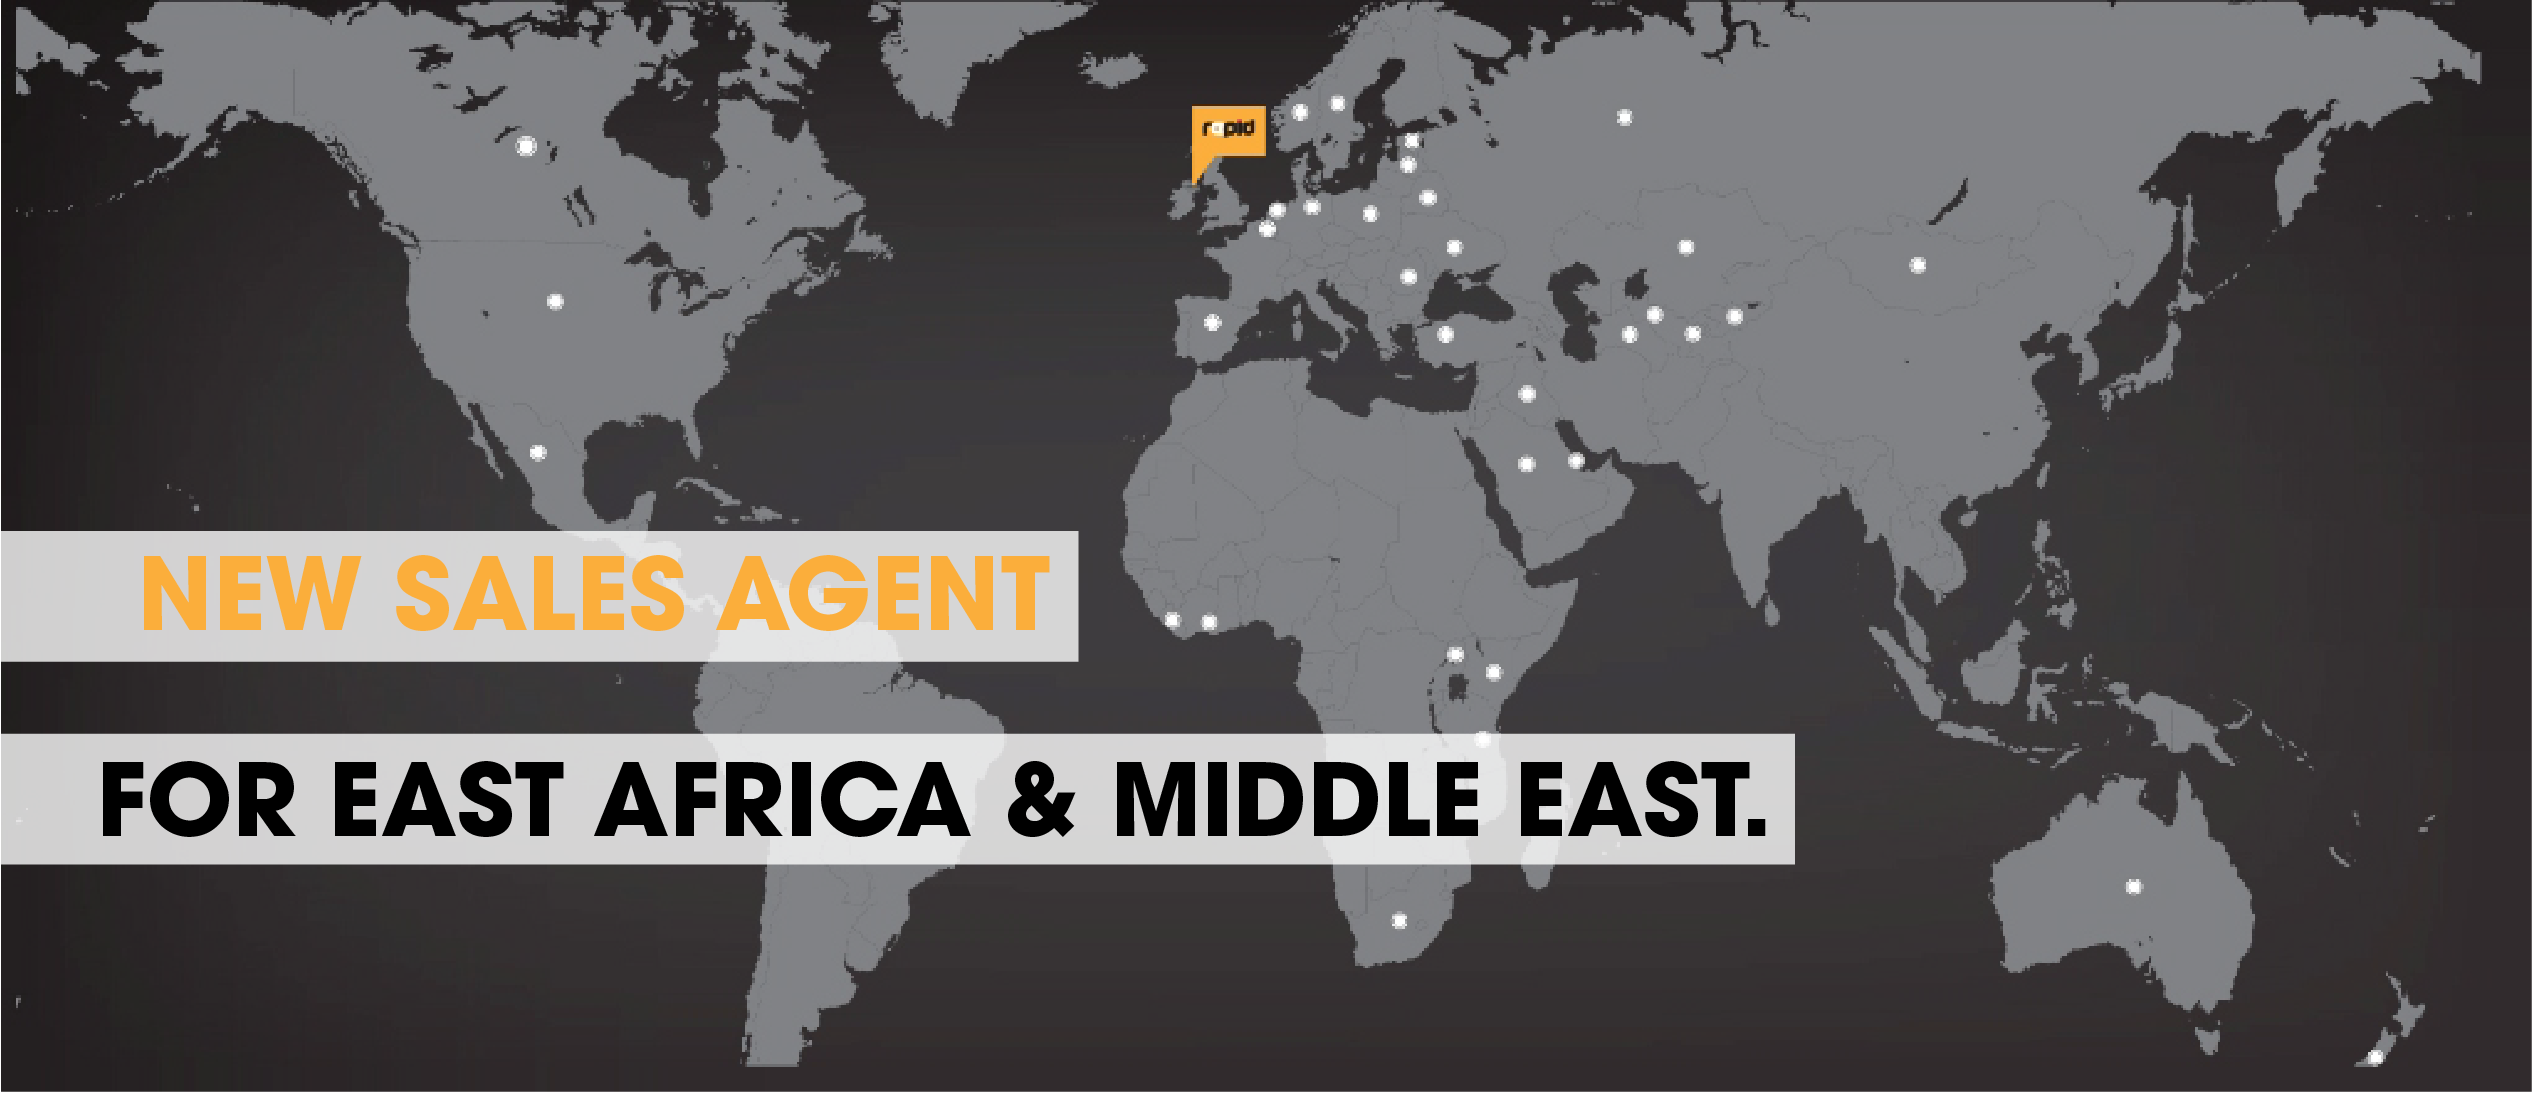 New Sales Agent For East Africa And Middle East Rapid